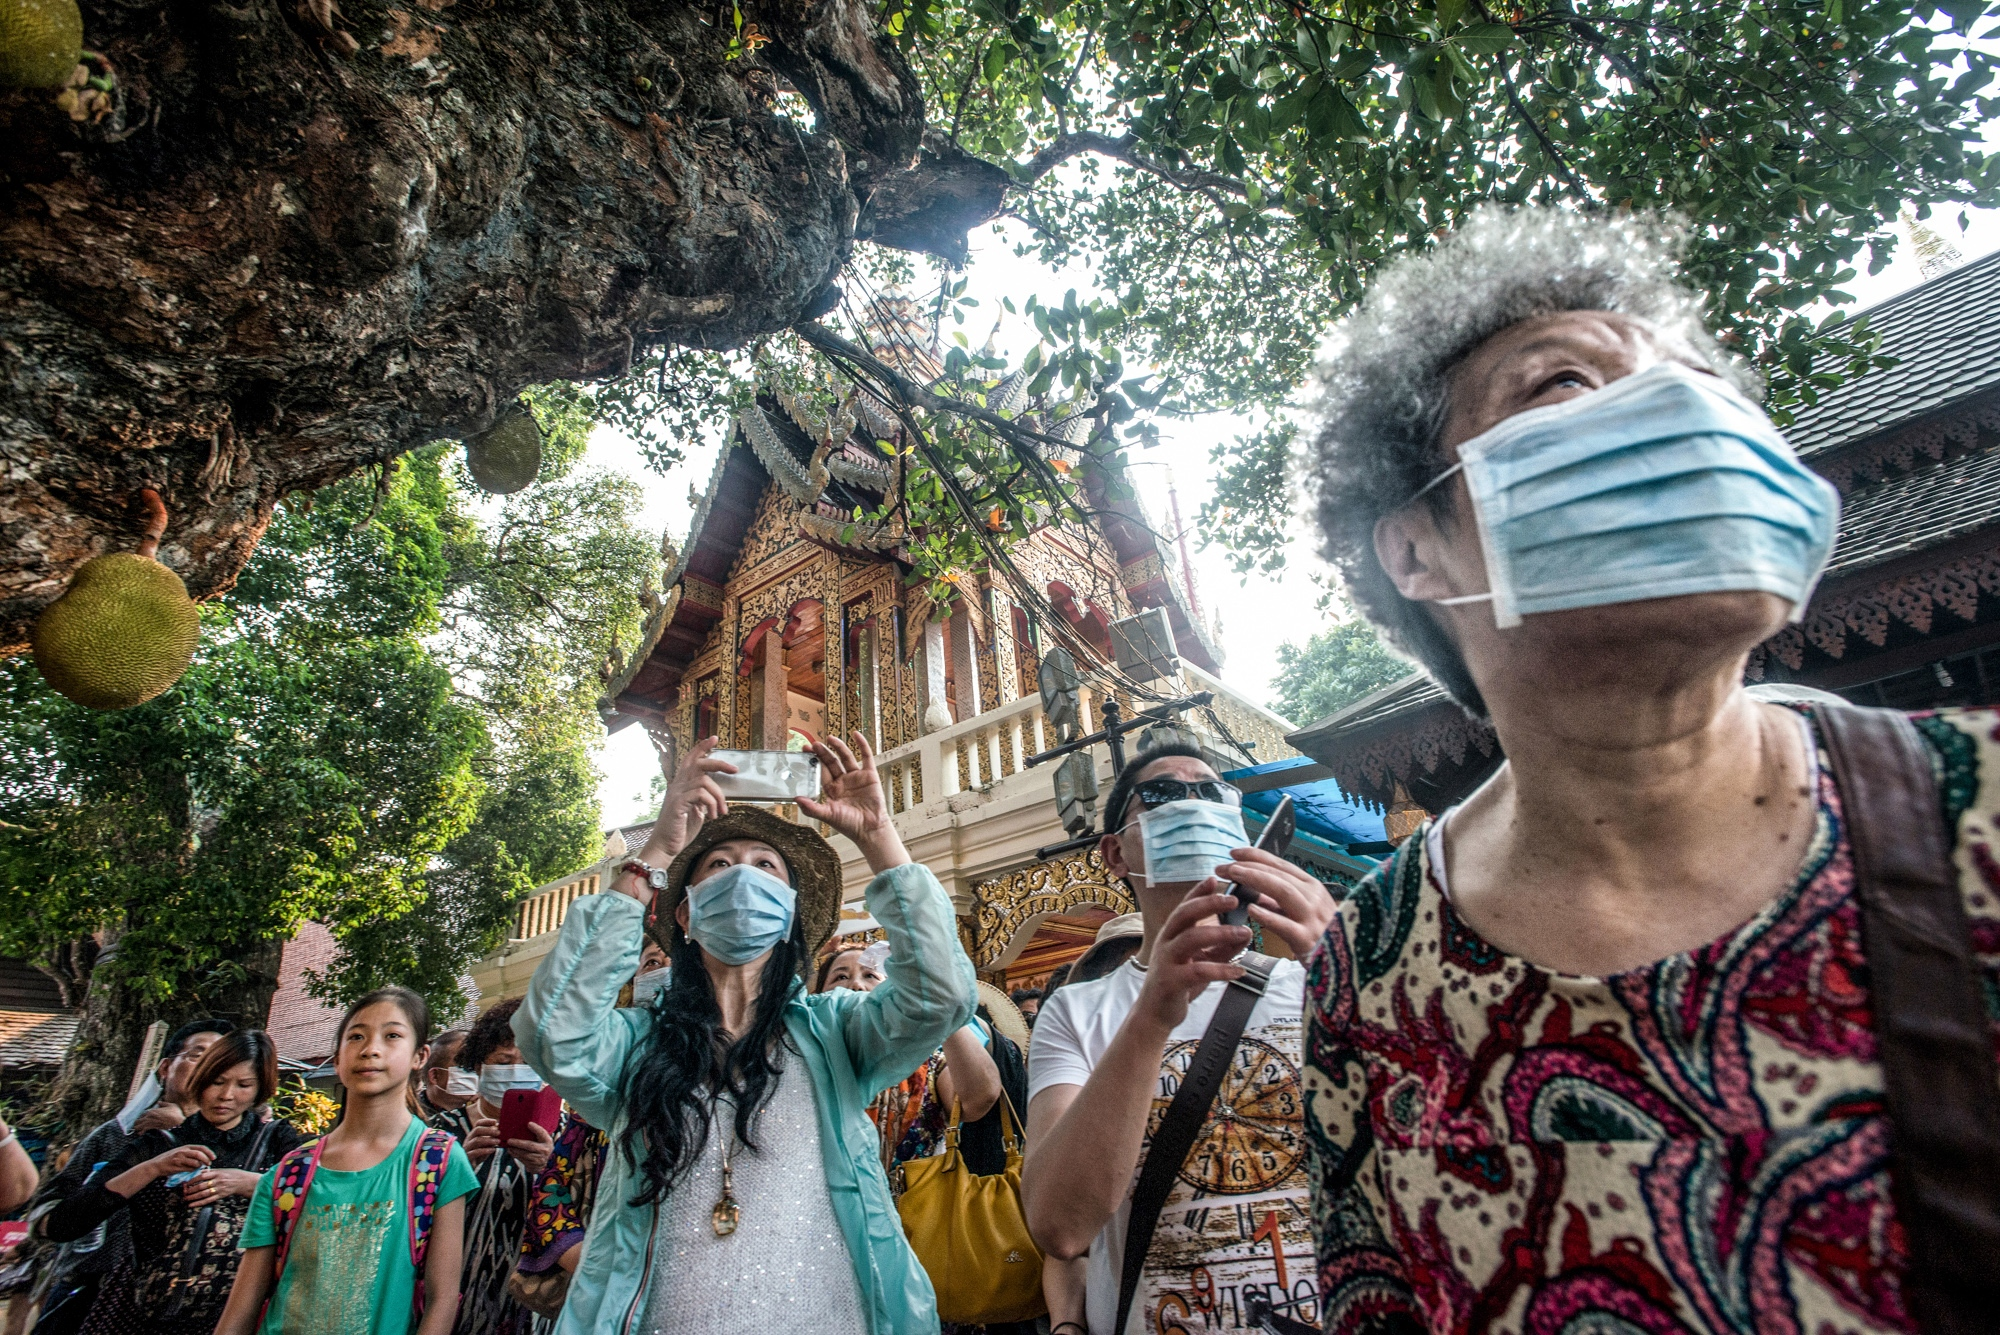 Asian tourists wear dust protection masks during making a visit to tourist destinations in the smog season in Chiang Mai, Thailand.